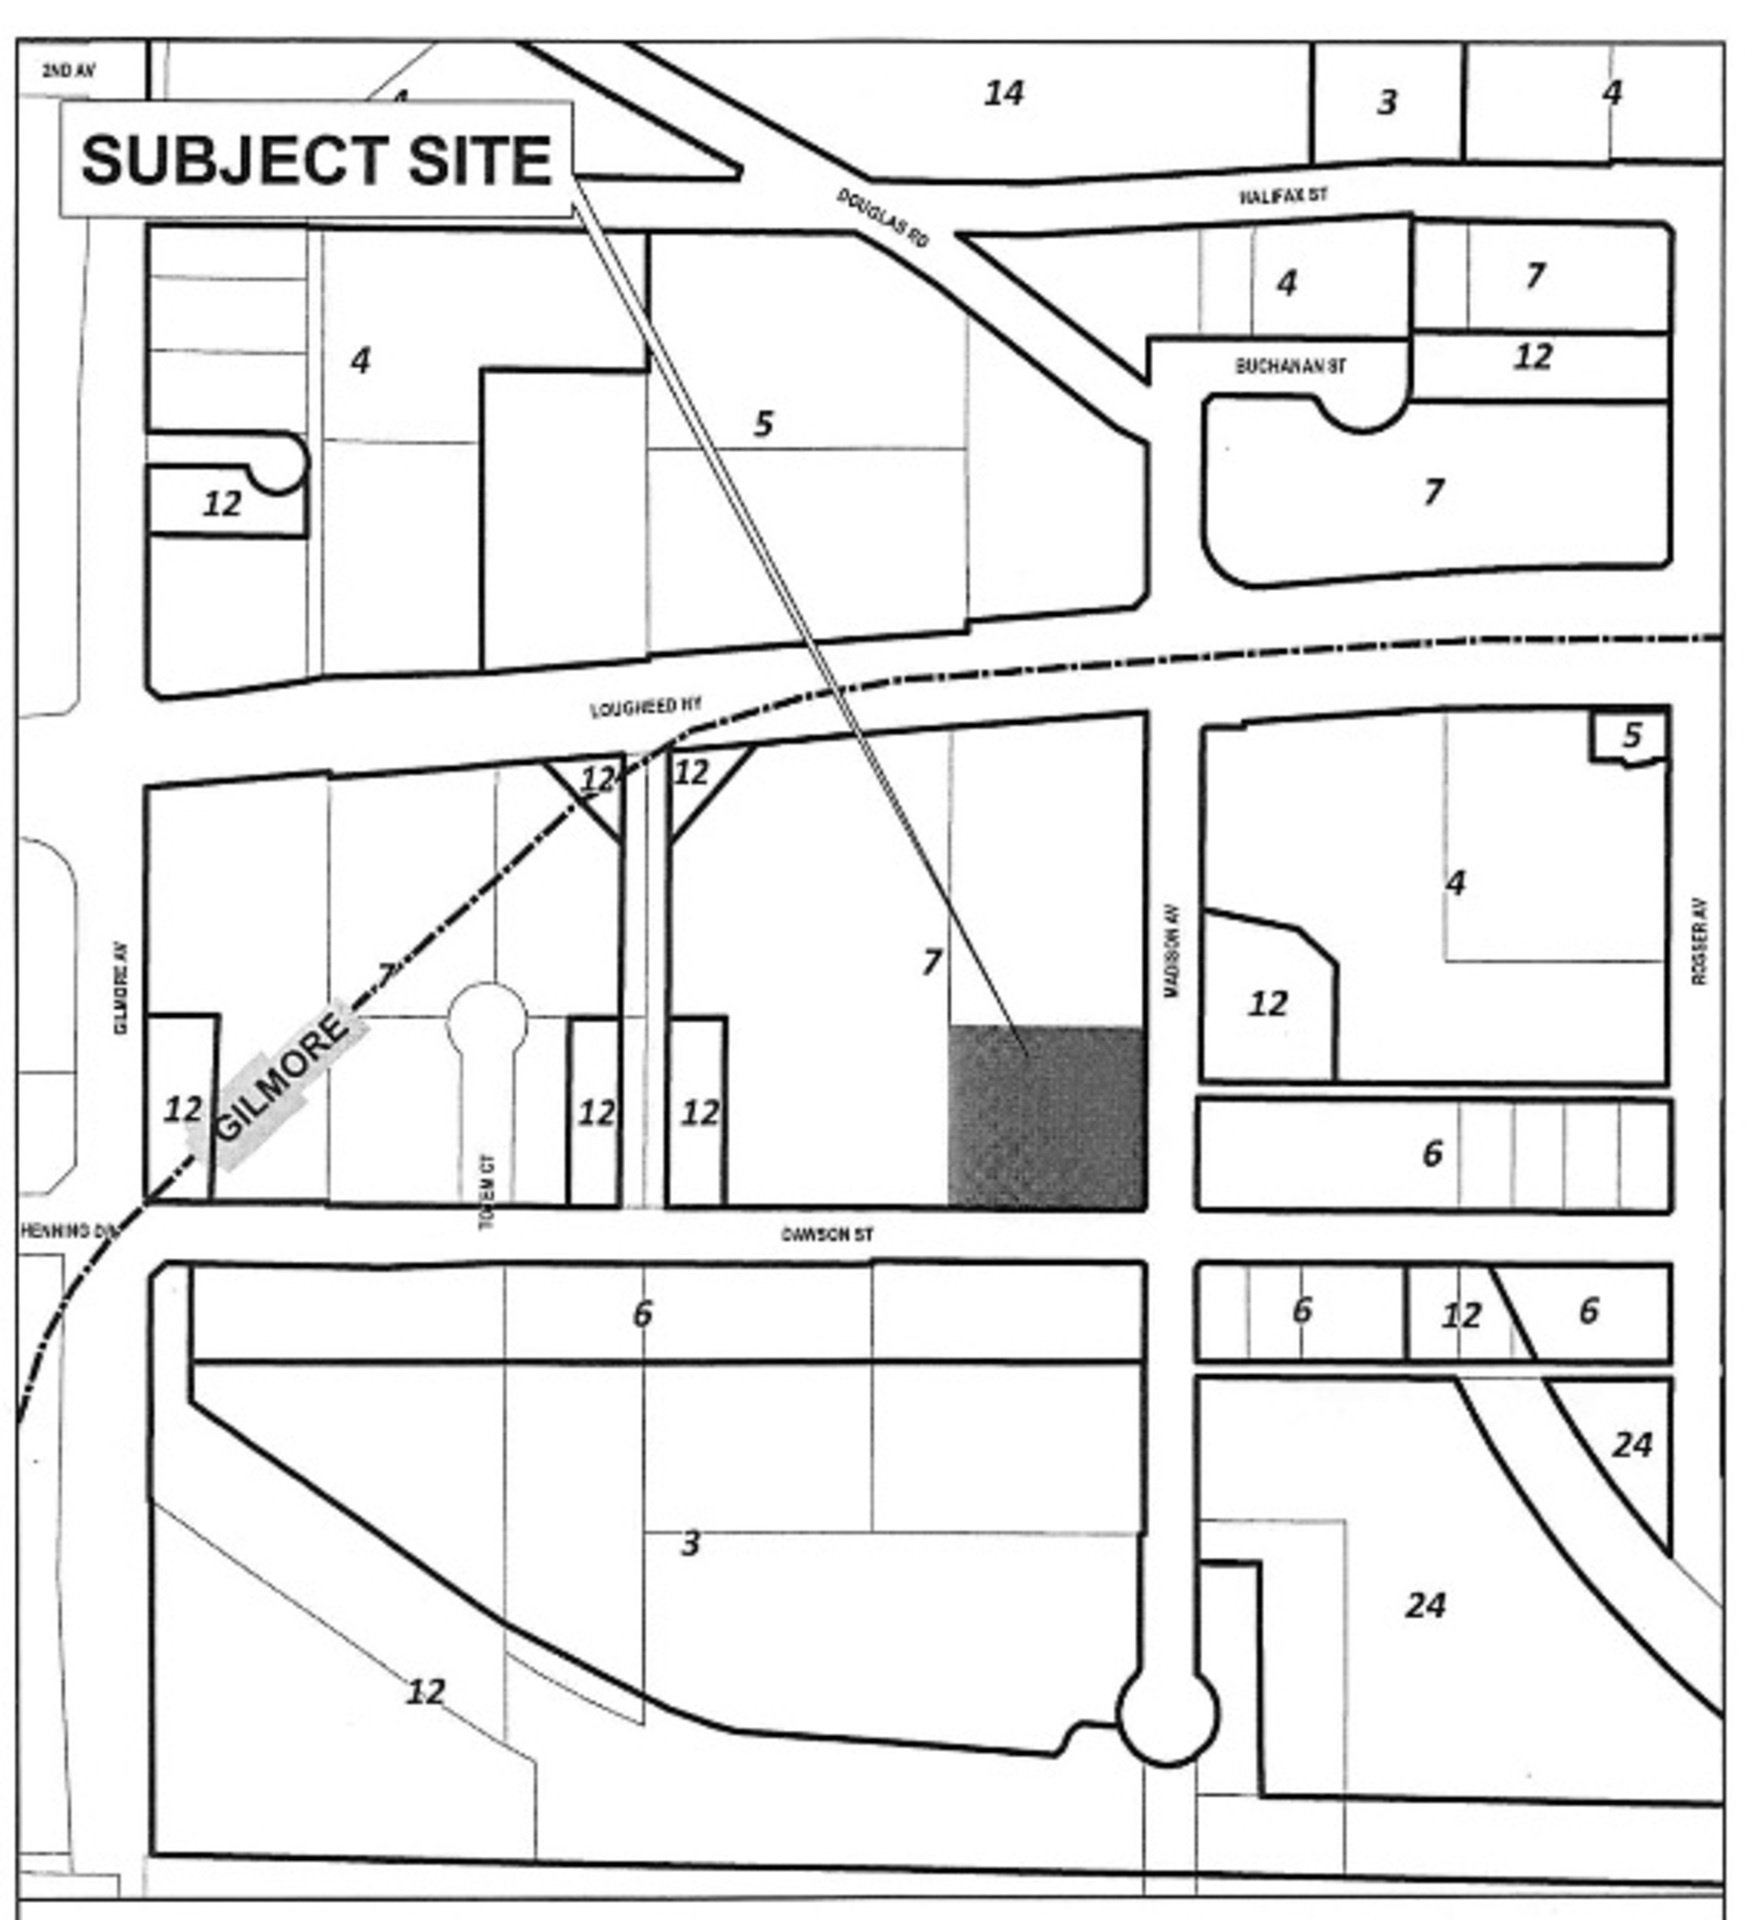 Akimbo in Brentwood Site Plan (4285 Dawson Street) at Akimbo (4285 Dawson Street, Brentwood Park, Burnaby North)